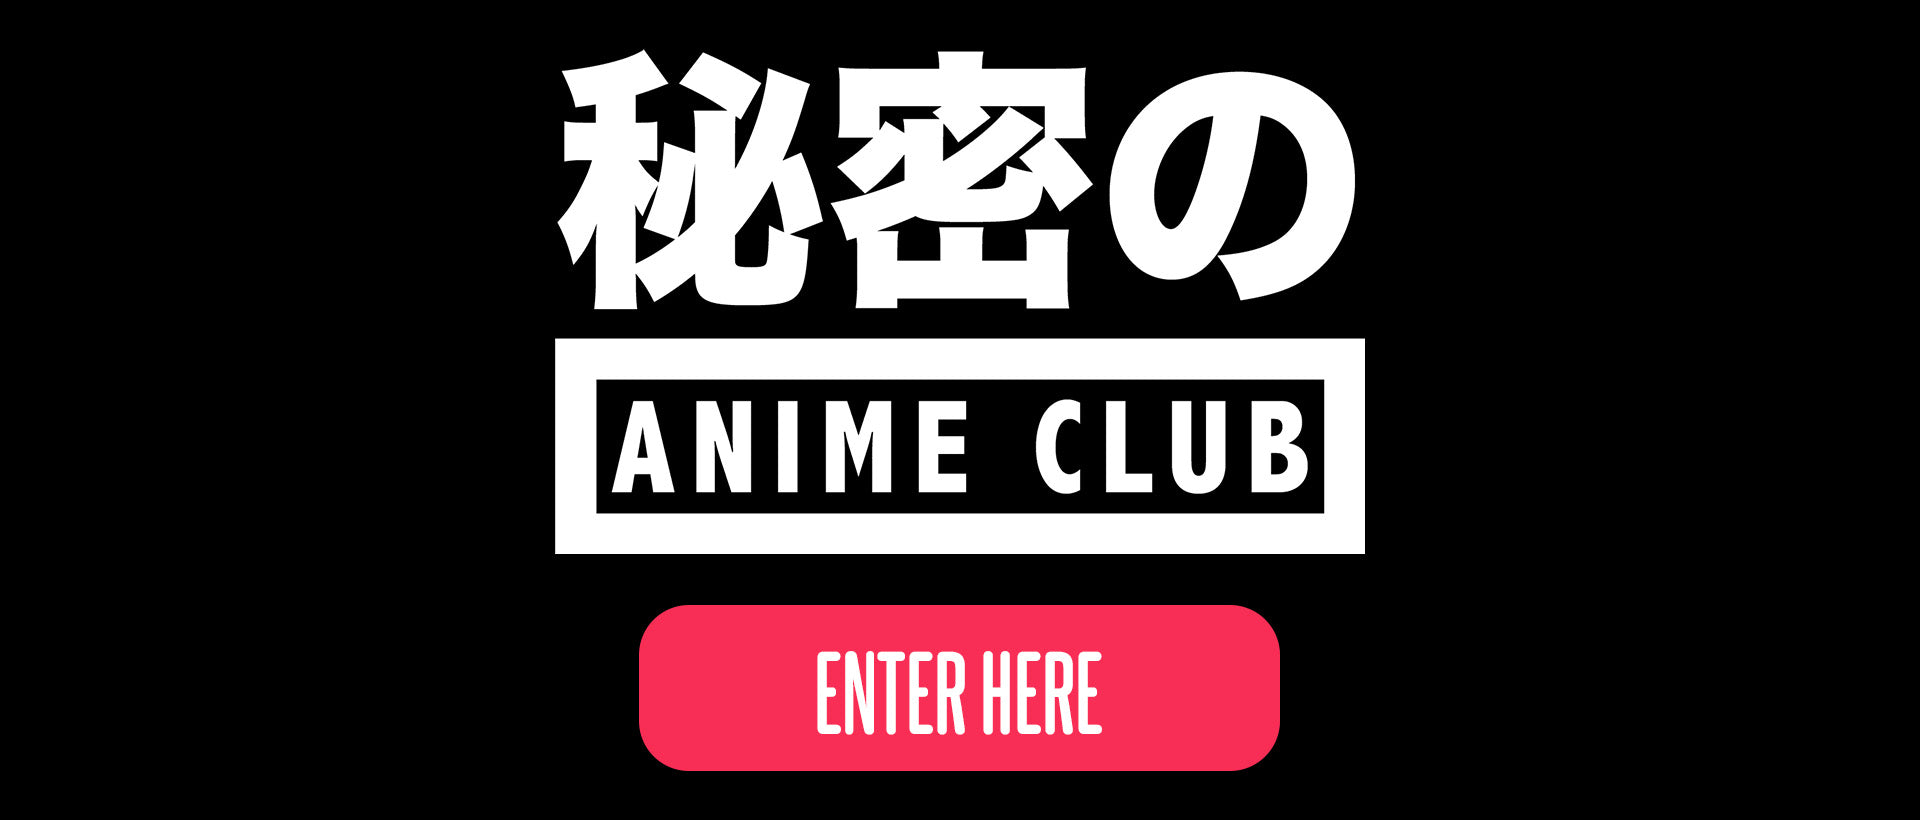 Imouri's Secret Anime Club